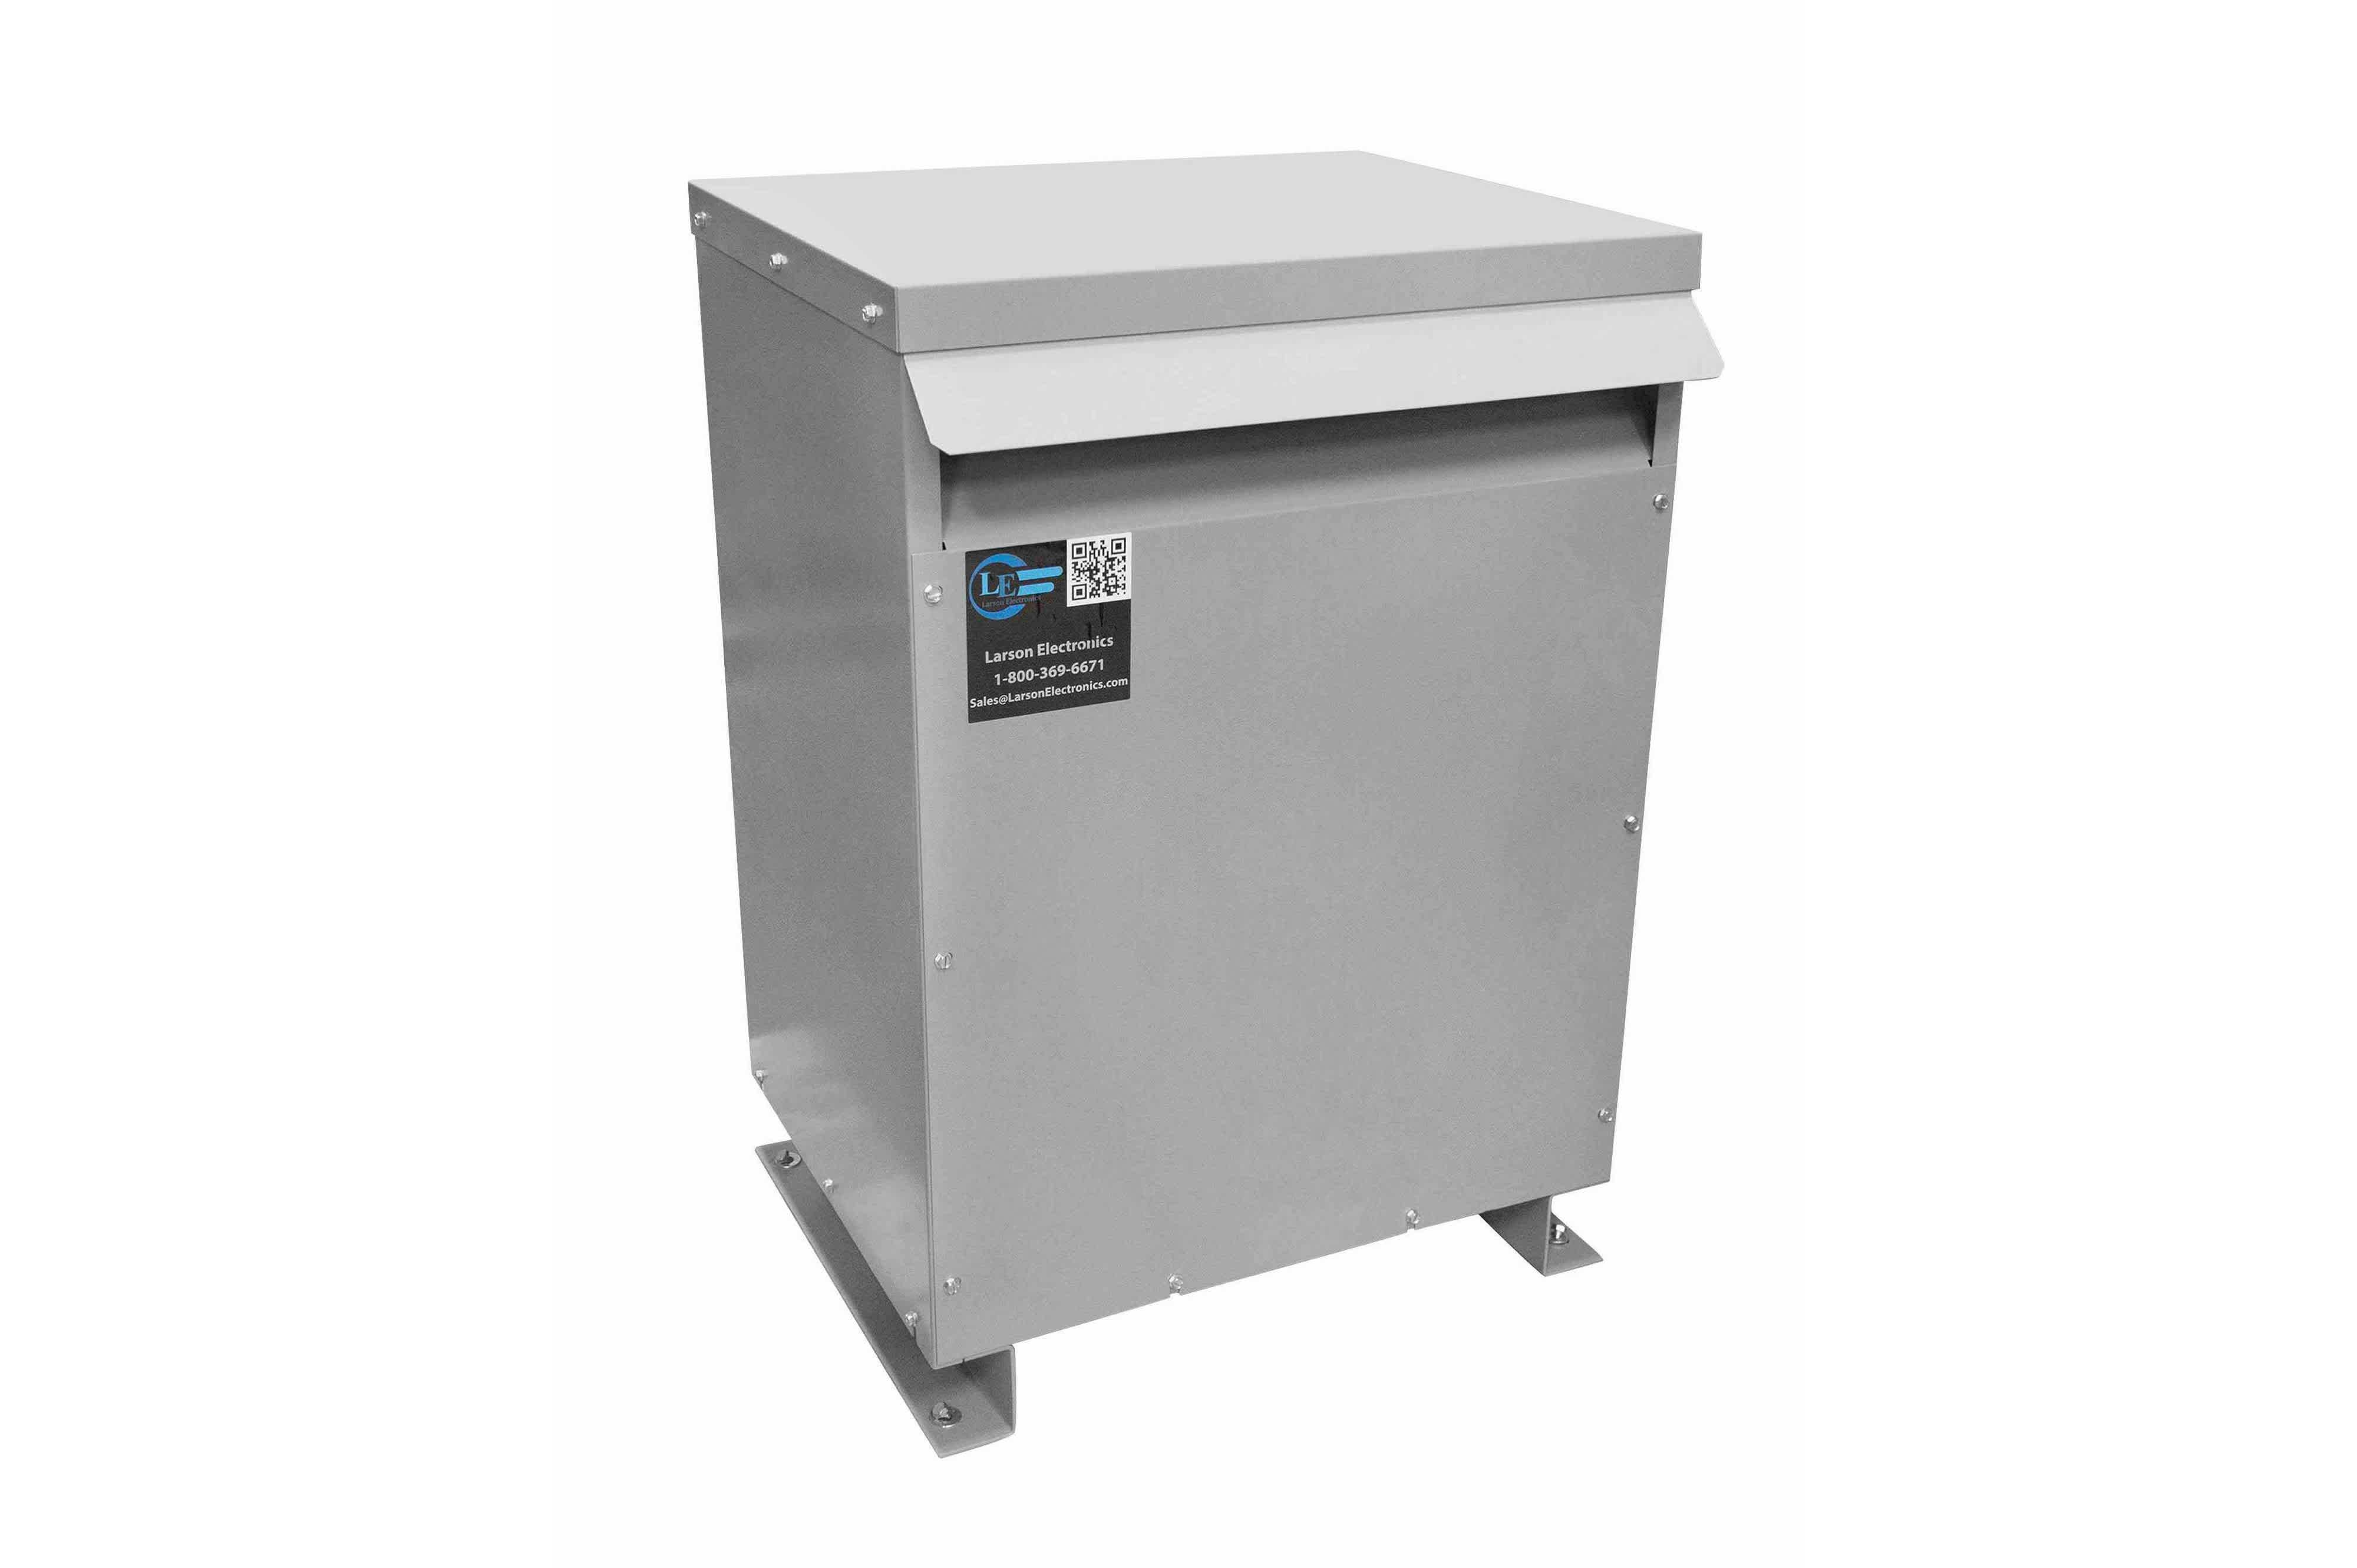 275 kVA 3PH Isolation Transformer, 208V Wye Primary, 240V Delta Secondary, N3R, Ventilated, 60 Hz